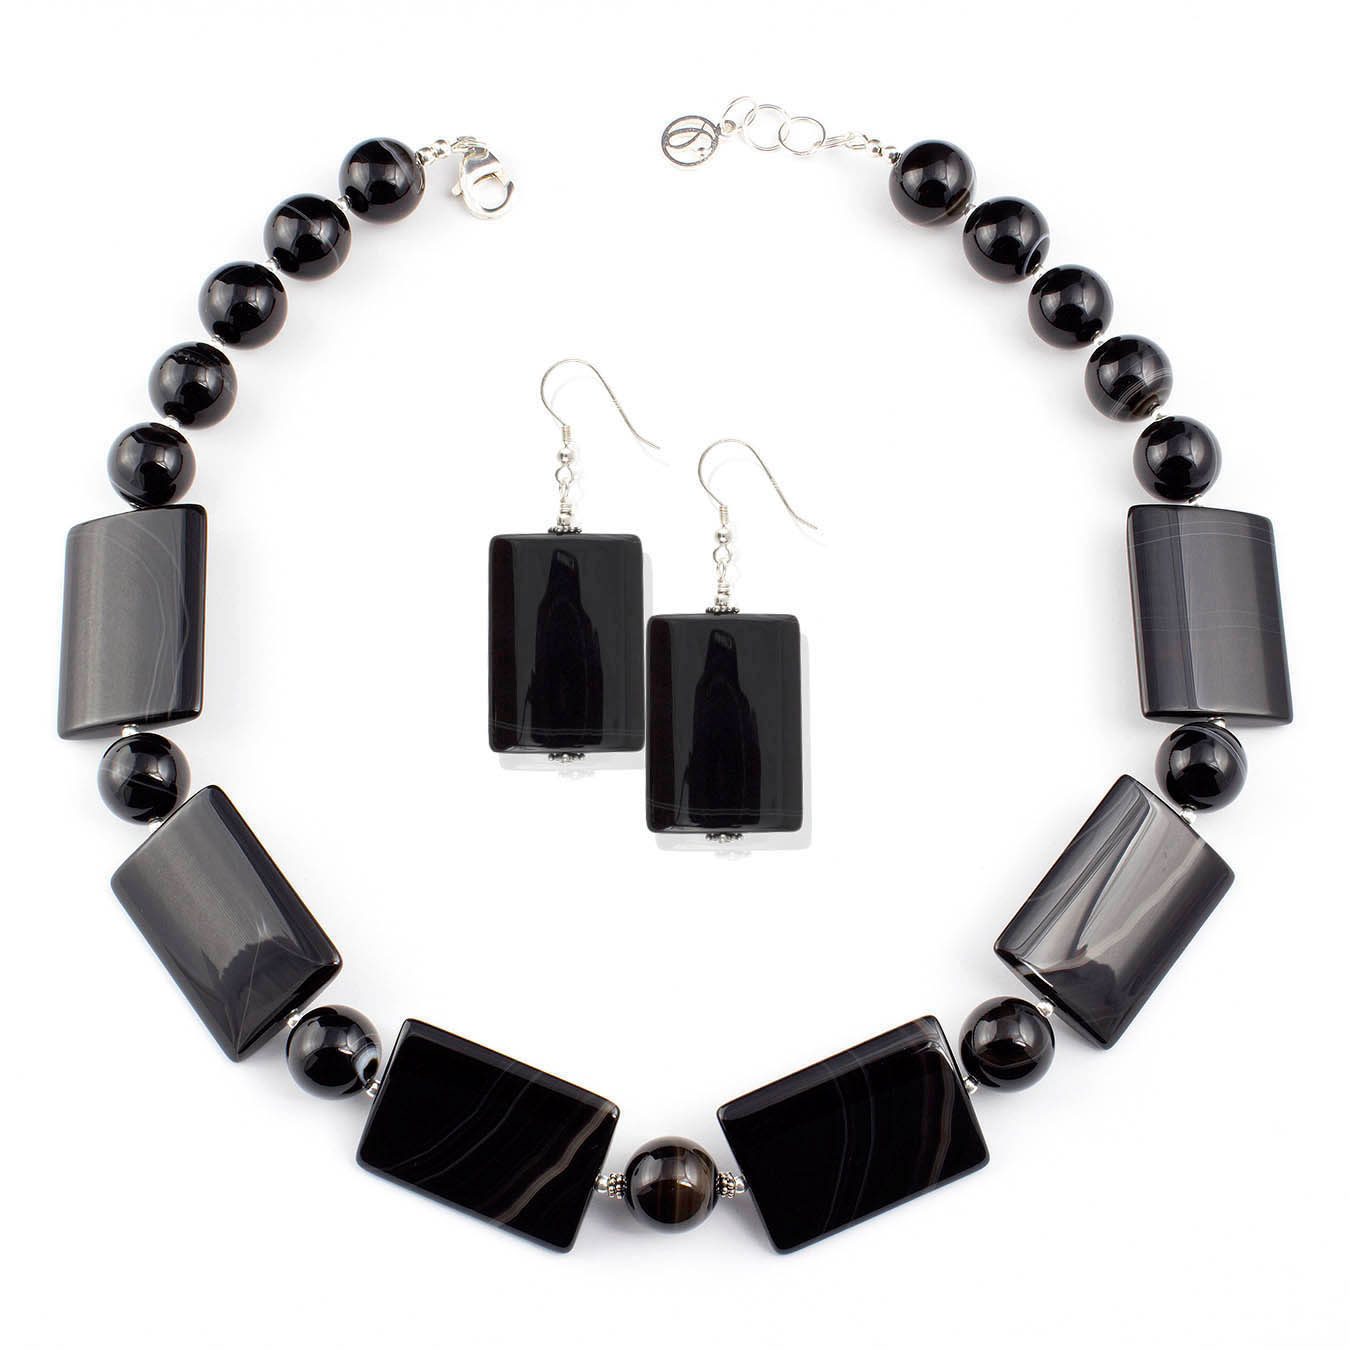 Beaded collar jewelry necklace made with black lace agate stones